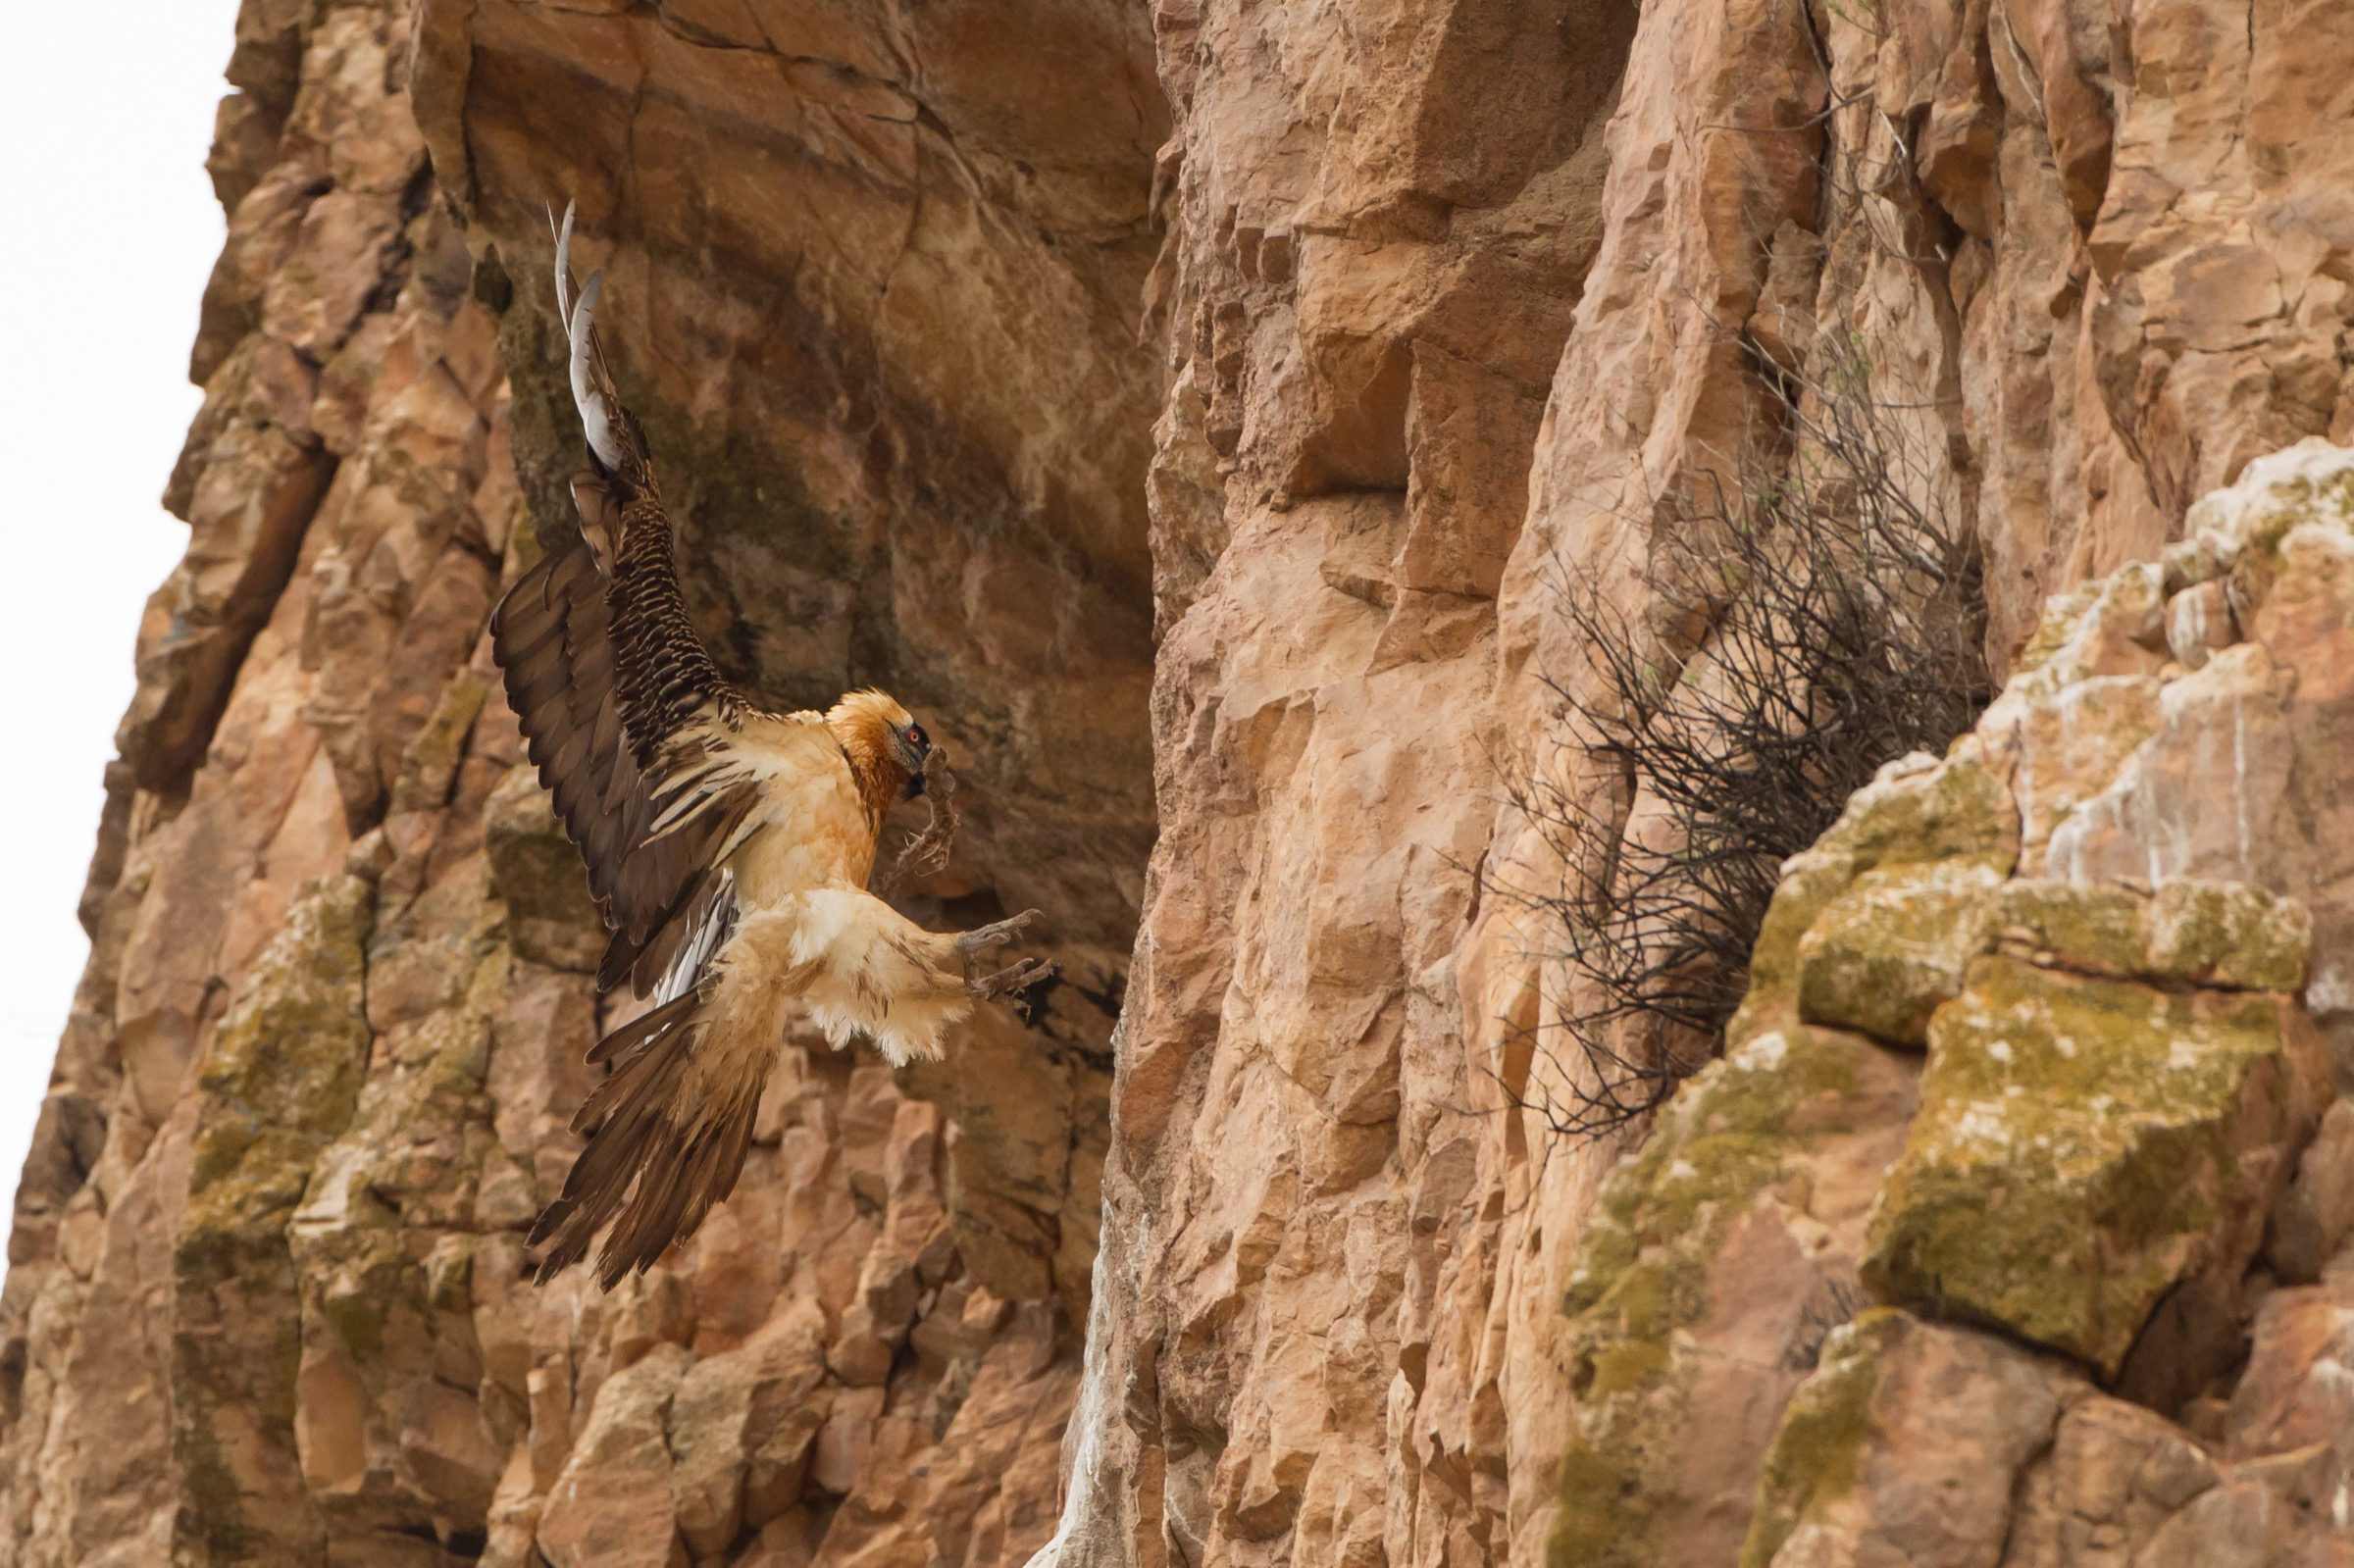 According to Iranian folklore, bearded vultures (<em>Gypaetus barbatus</em>), like this one in Iran's Golestan National Park, bring good luck to anyone fortunate enough to see one. A day after photographing this individual, Behzad Farahanchi encountered a Persian leopard, his holy grail of wildlife photography. Photograph by Behzad Farahanchi